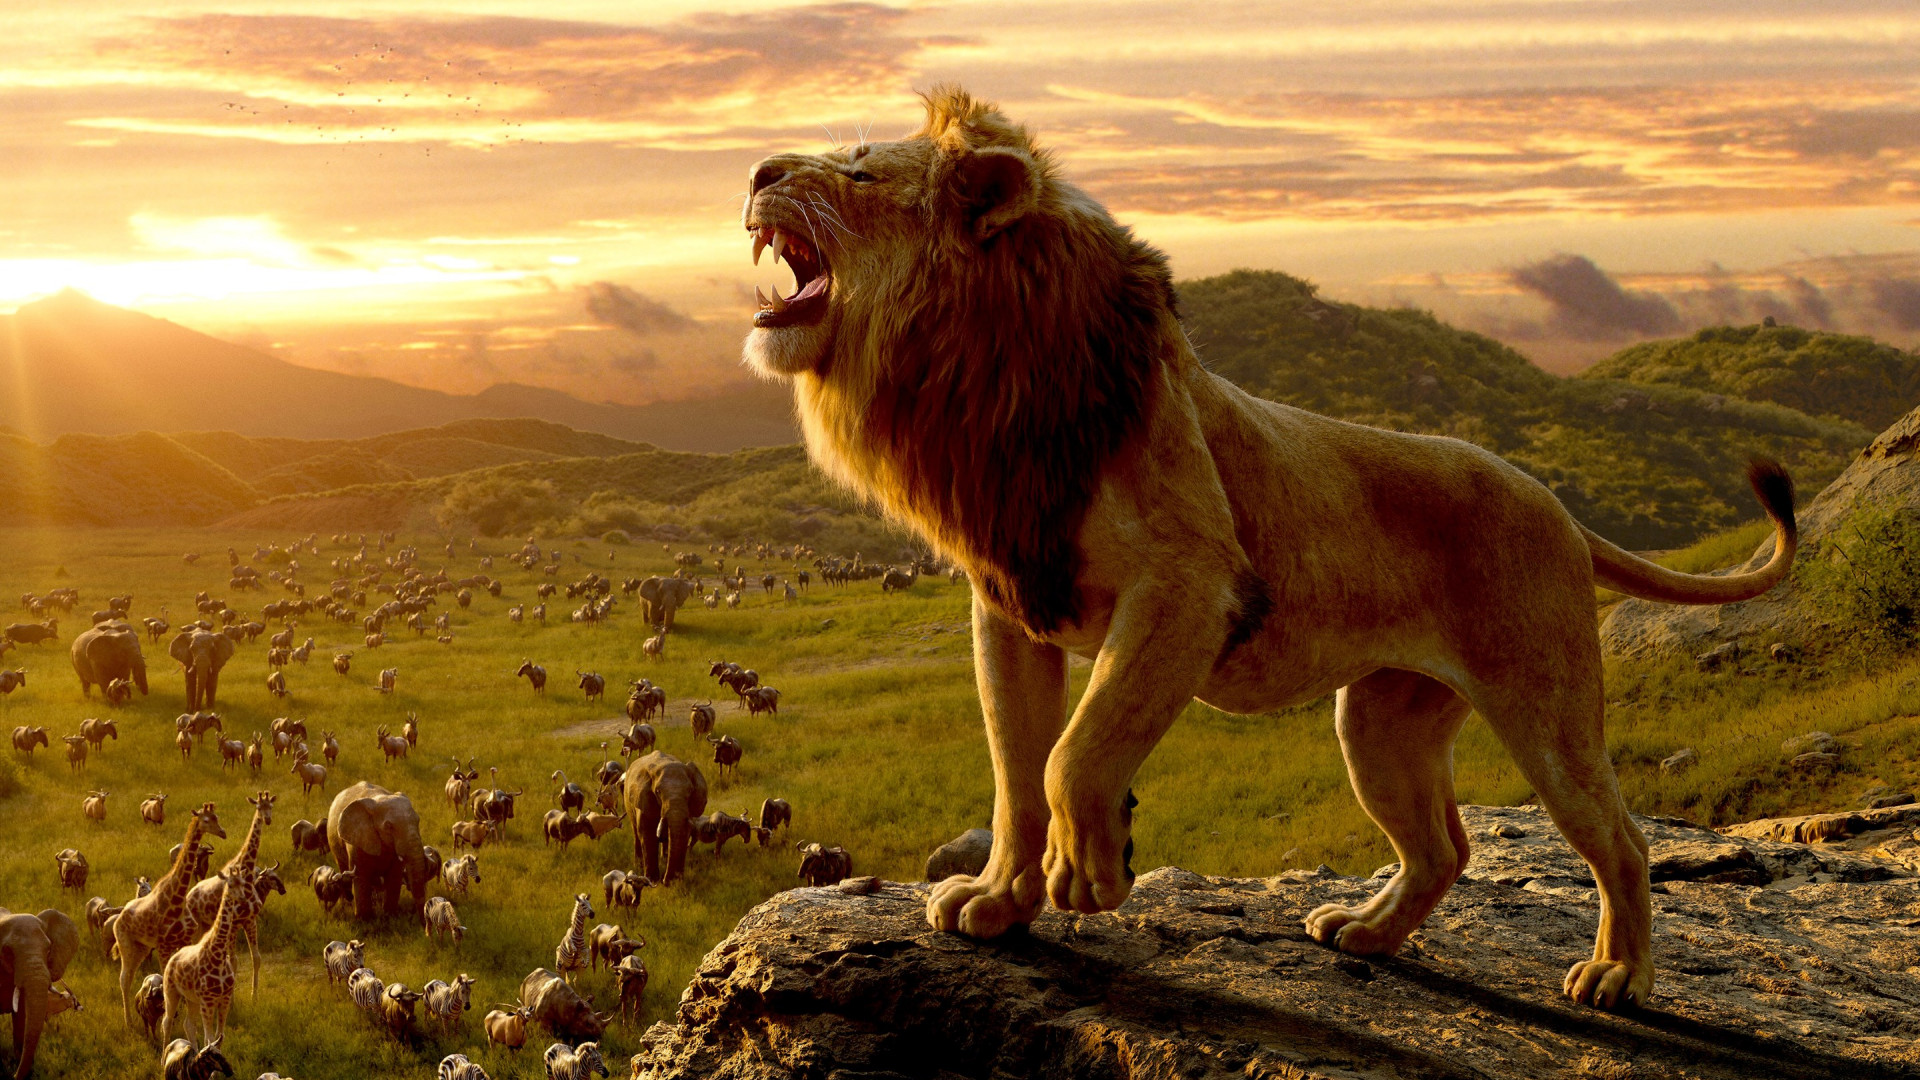 Download Wallpaper Simba The Lion King 1920x1080